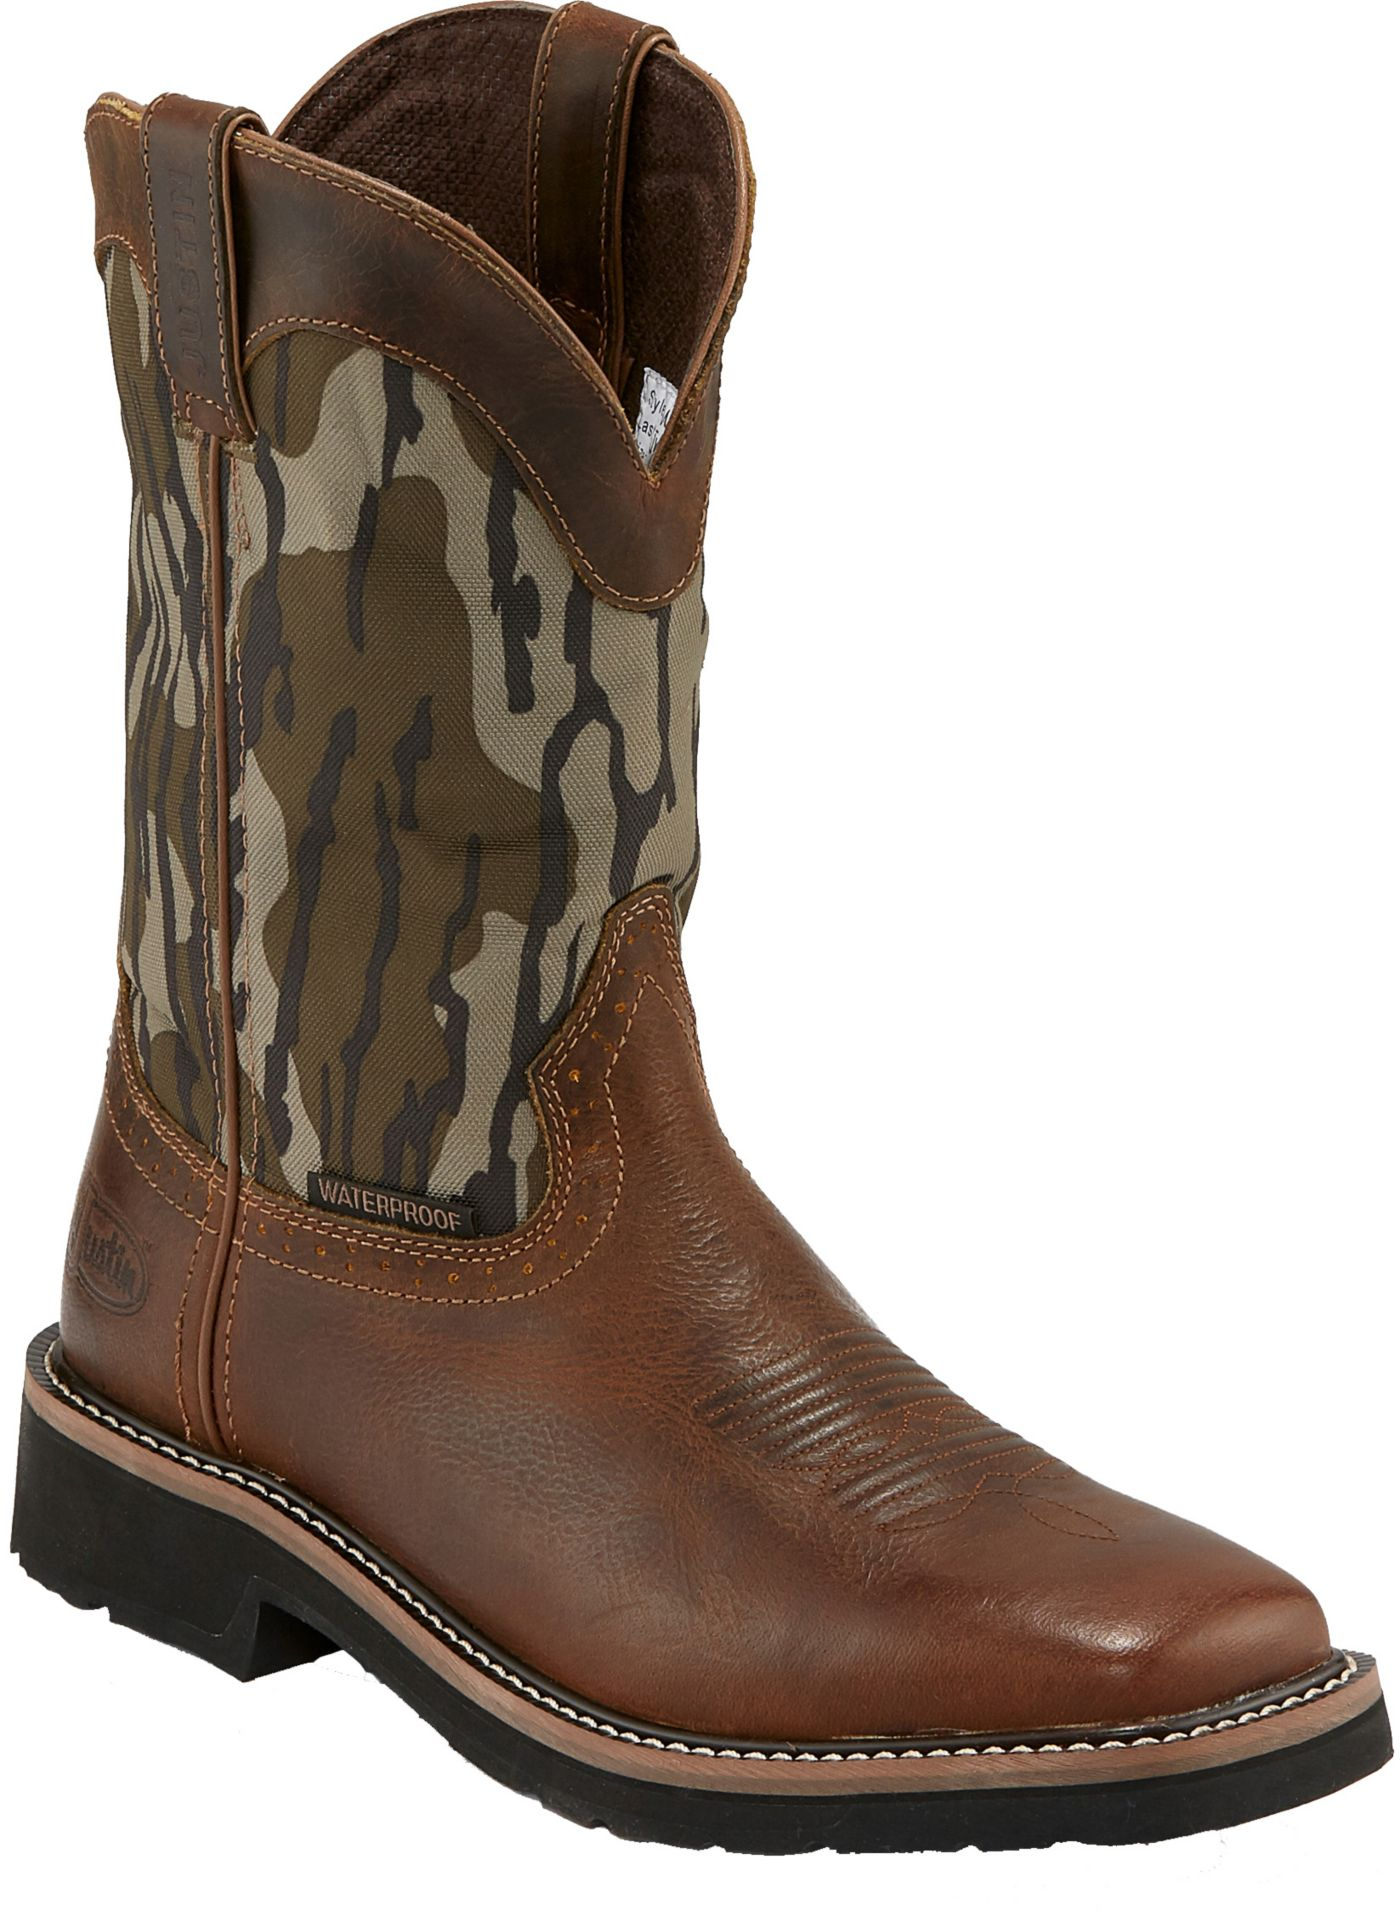 Justin Men's Trekker Bottom Lands Waterproof Western Work Boots